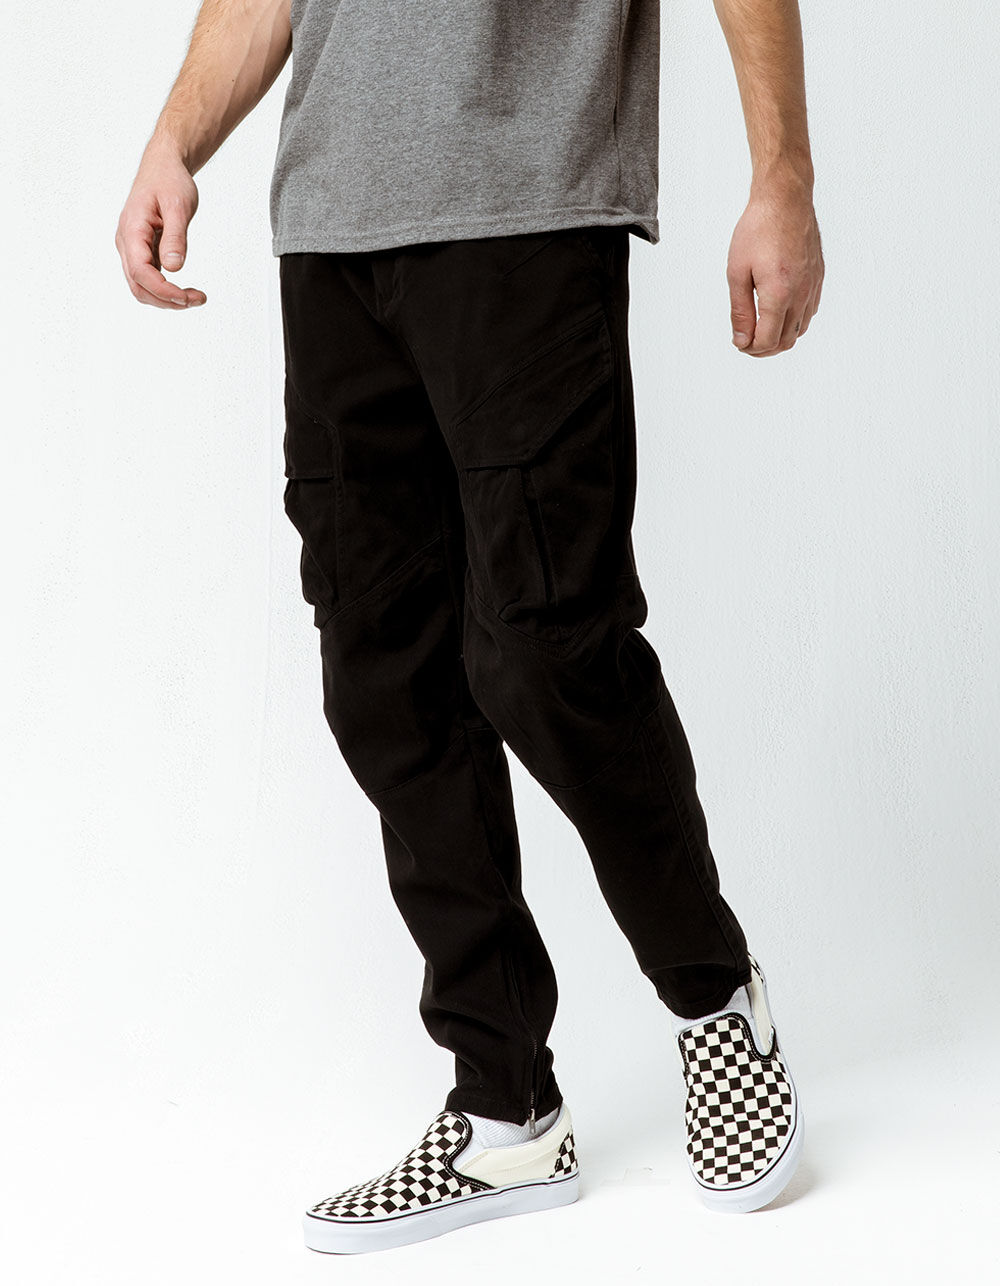 NITROUS BLACK Rooted Cargo Jogger Pants